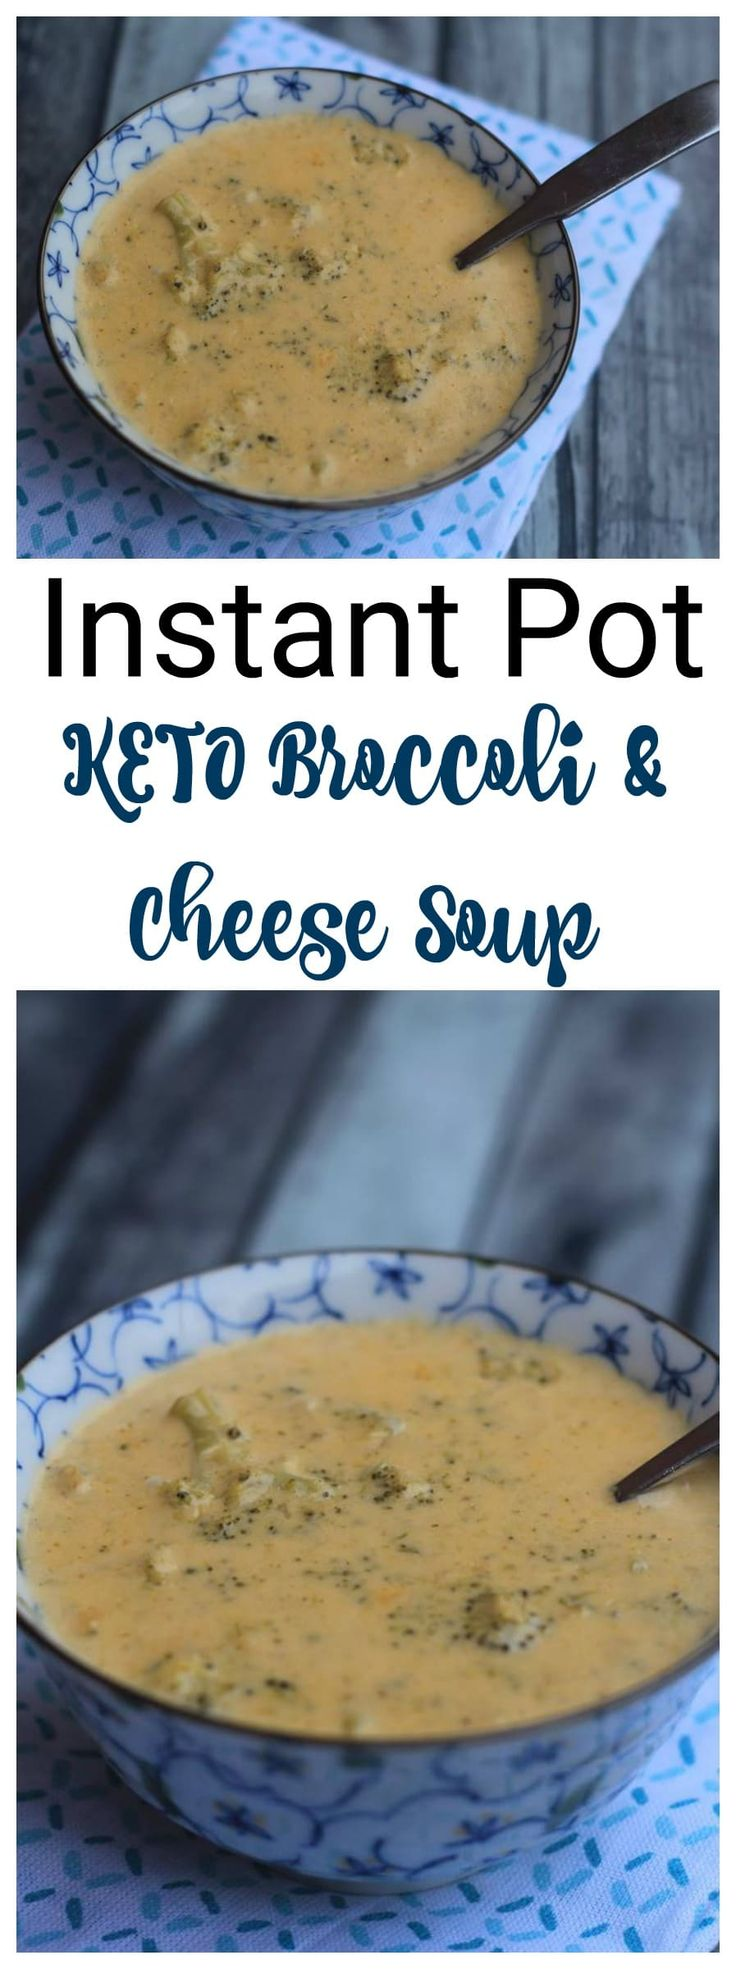 Instant Pot Broccoli & CHeese Soup keto low carb